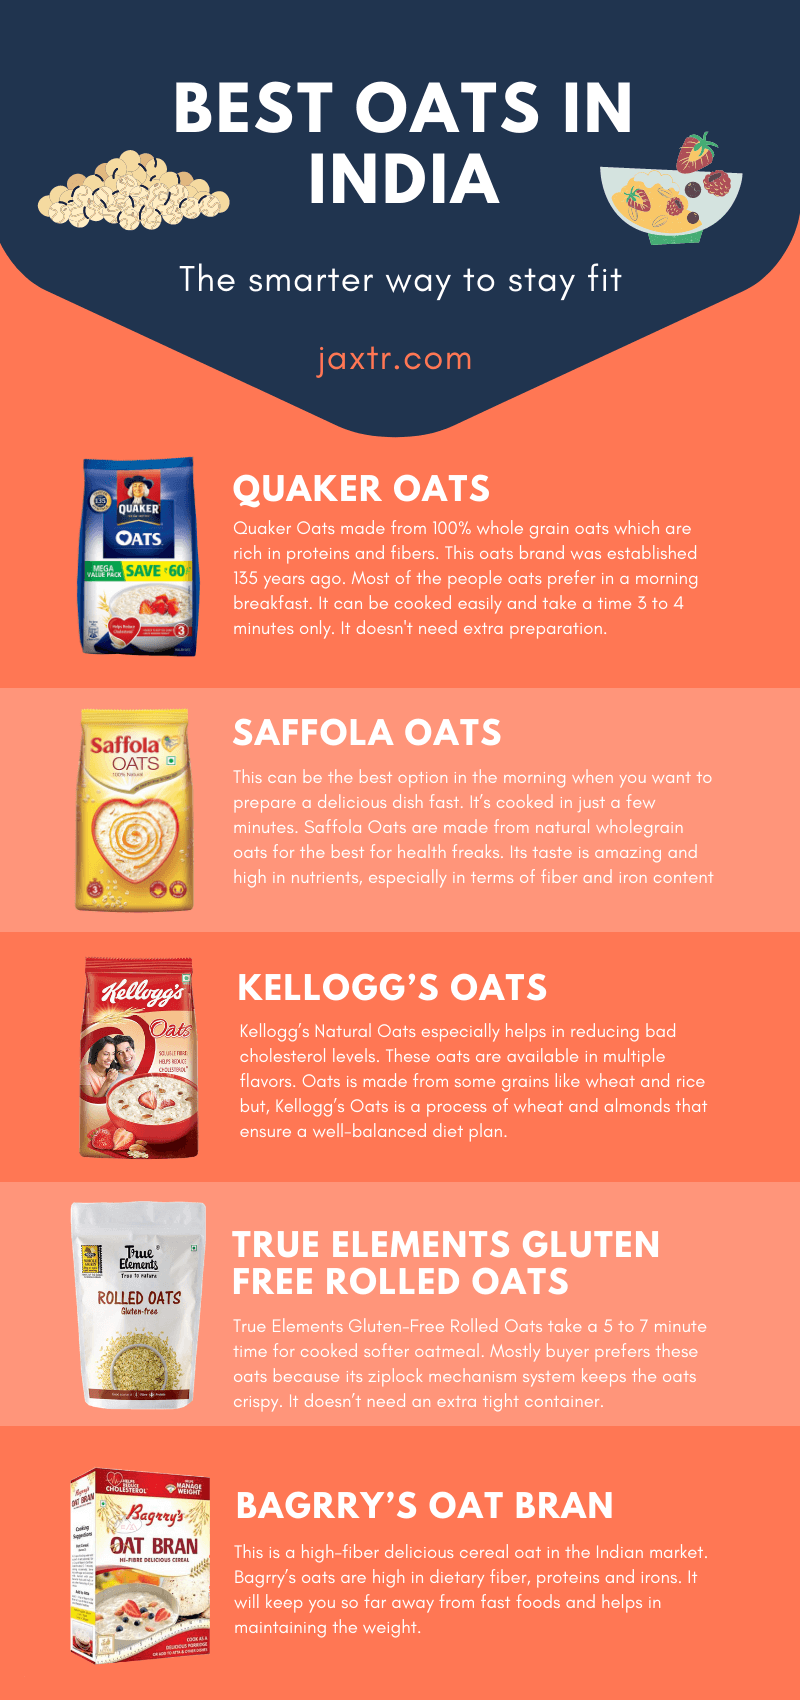 best oats in india infographic jaxtr (1)